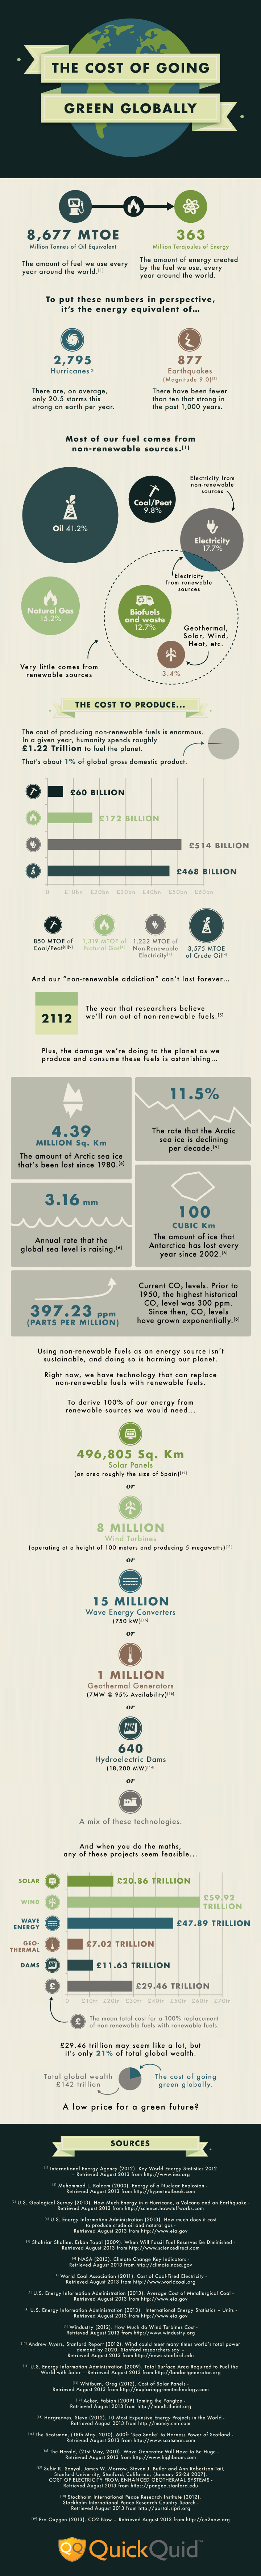 The Cost of Going Green Globally